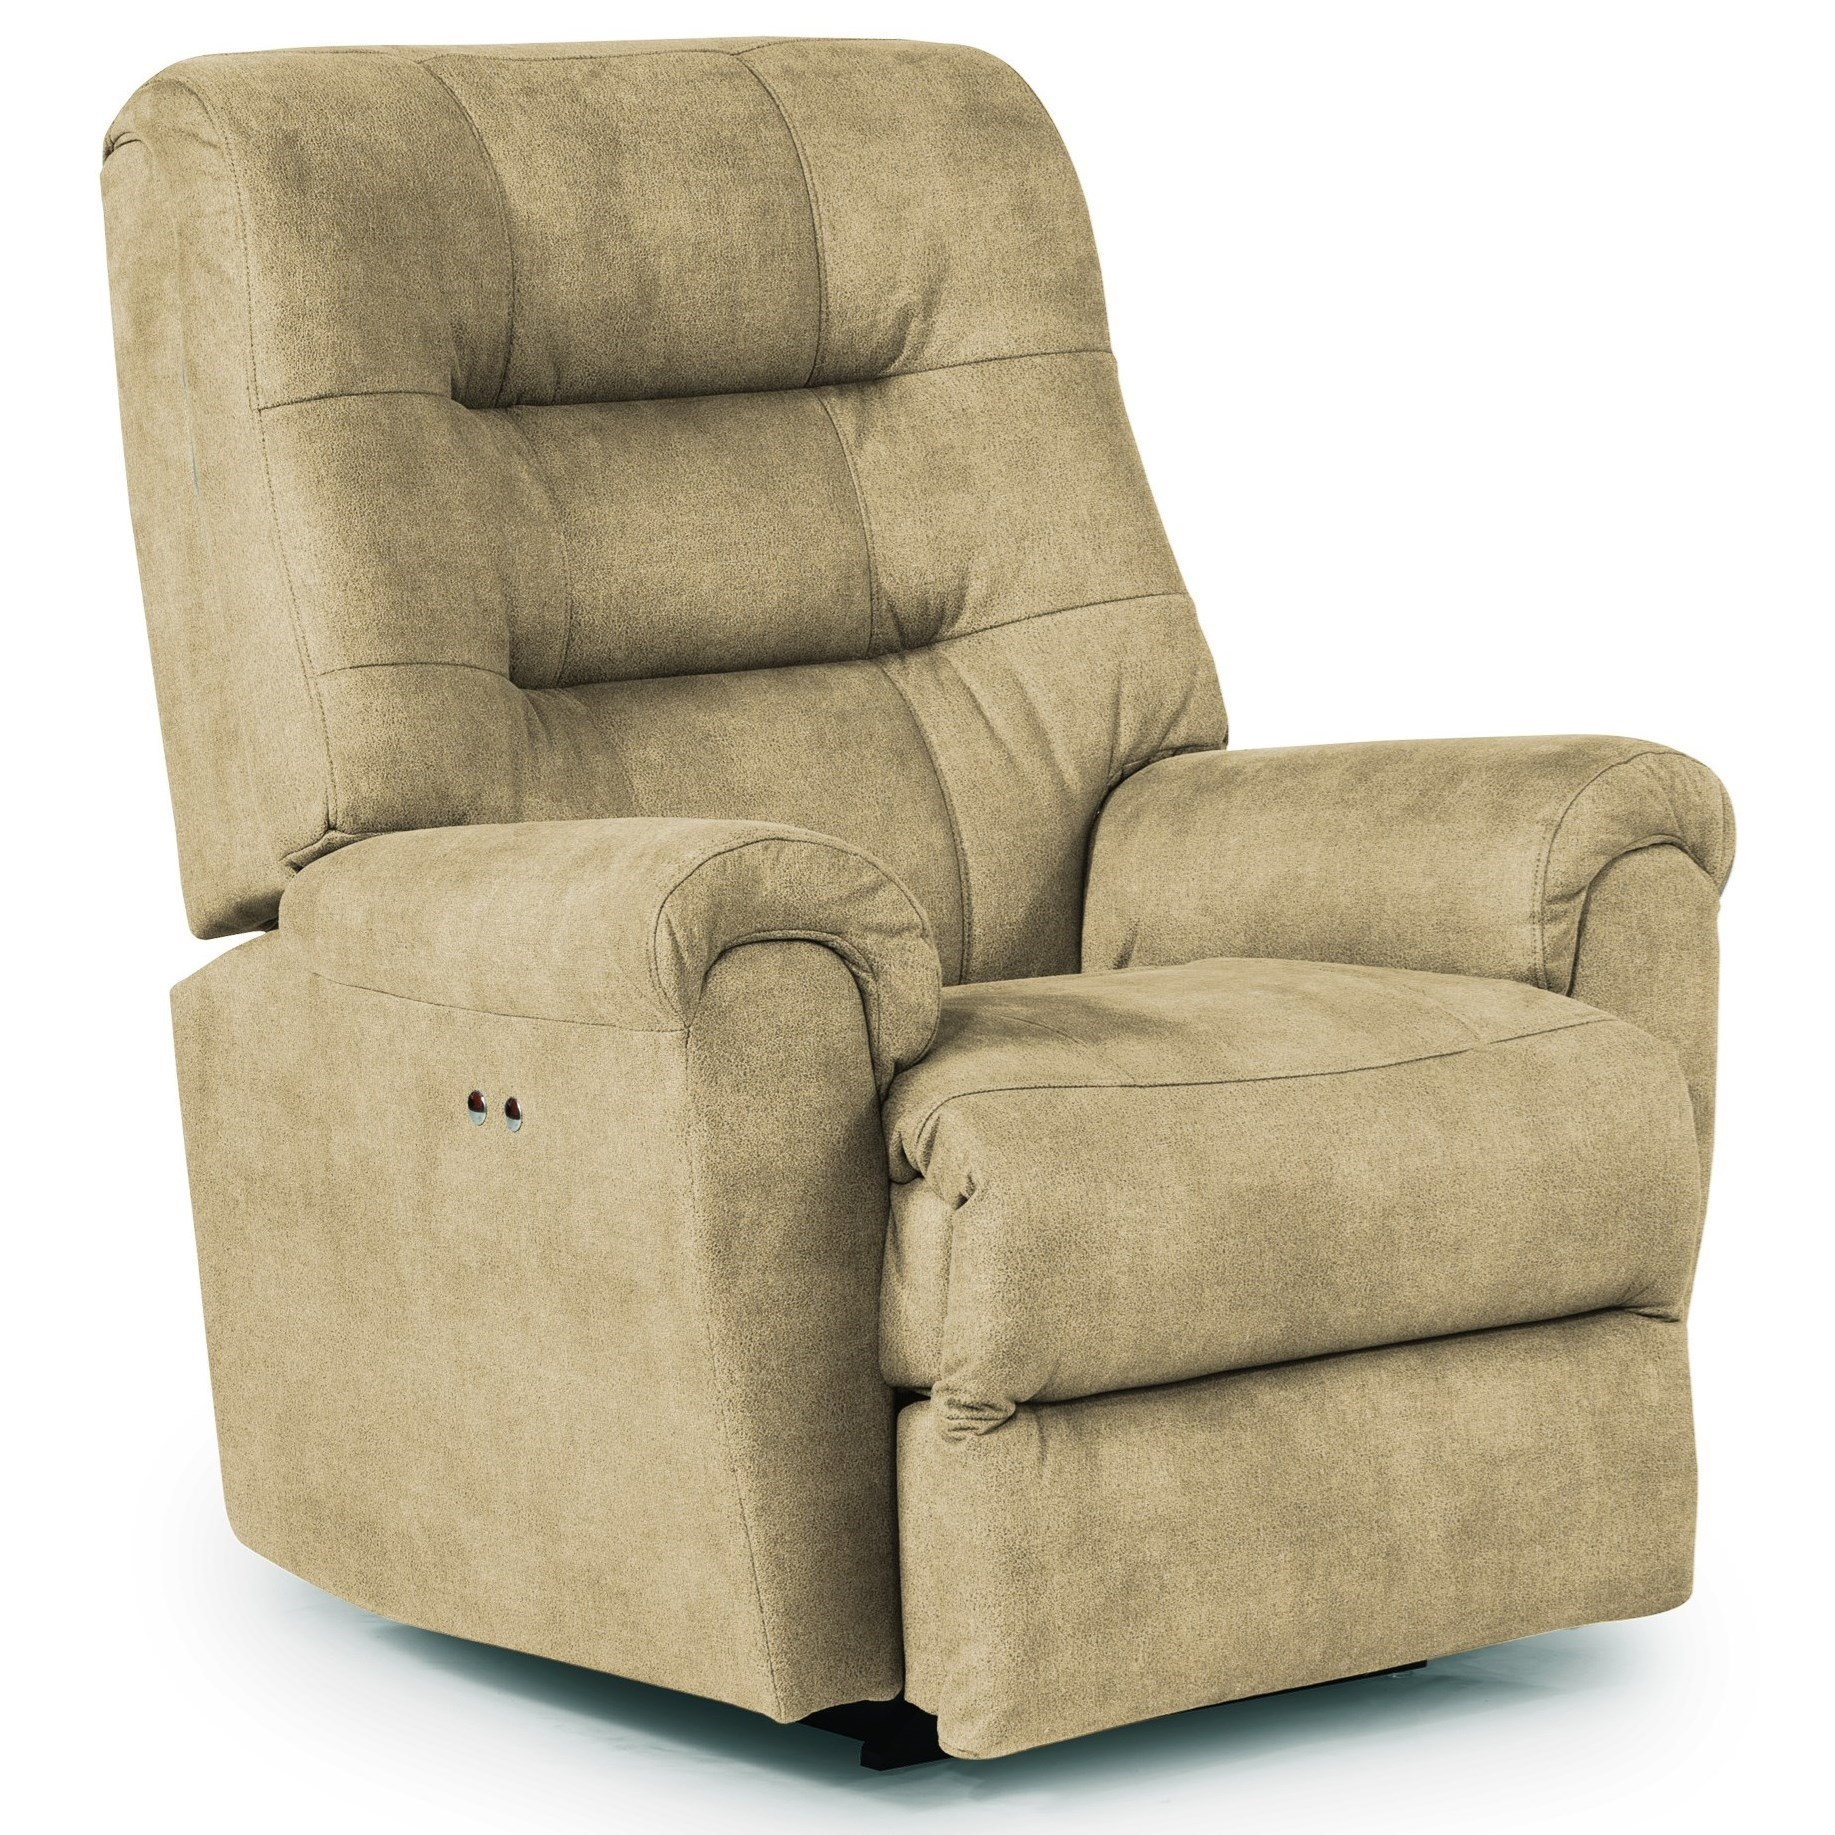 Best Home Furnishings Recliners - Medium Langston Power Space Saver Recliner - Item Number: -677908475-21957